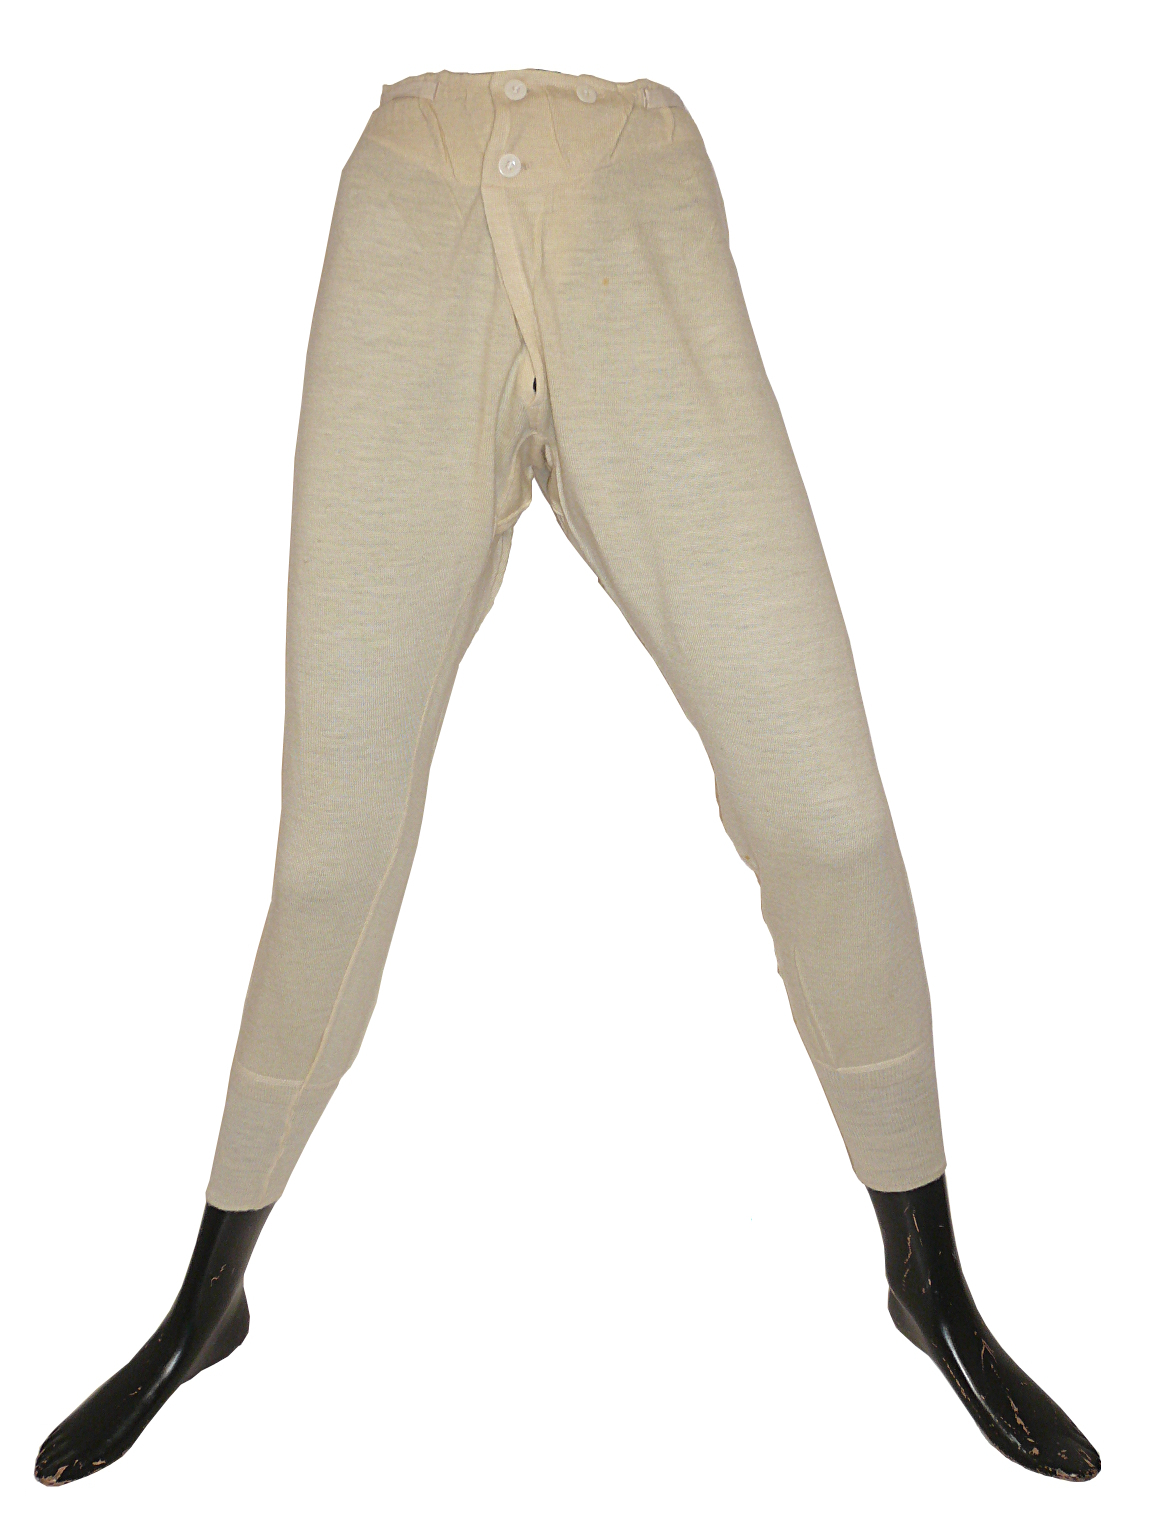 Swedish Wool Thermal Long Johns Thm05 Comrades